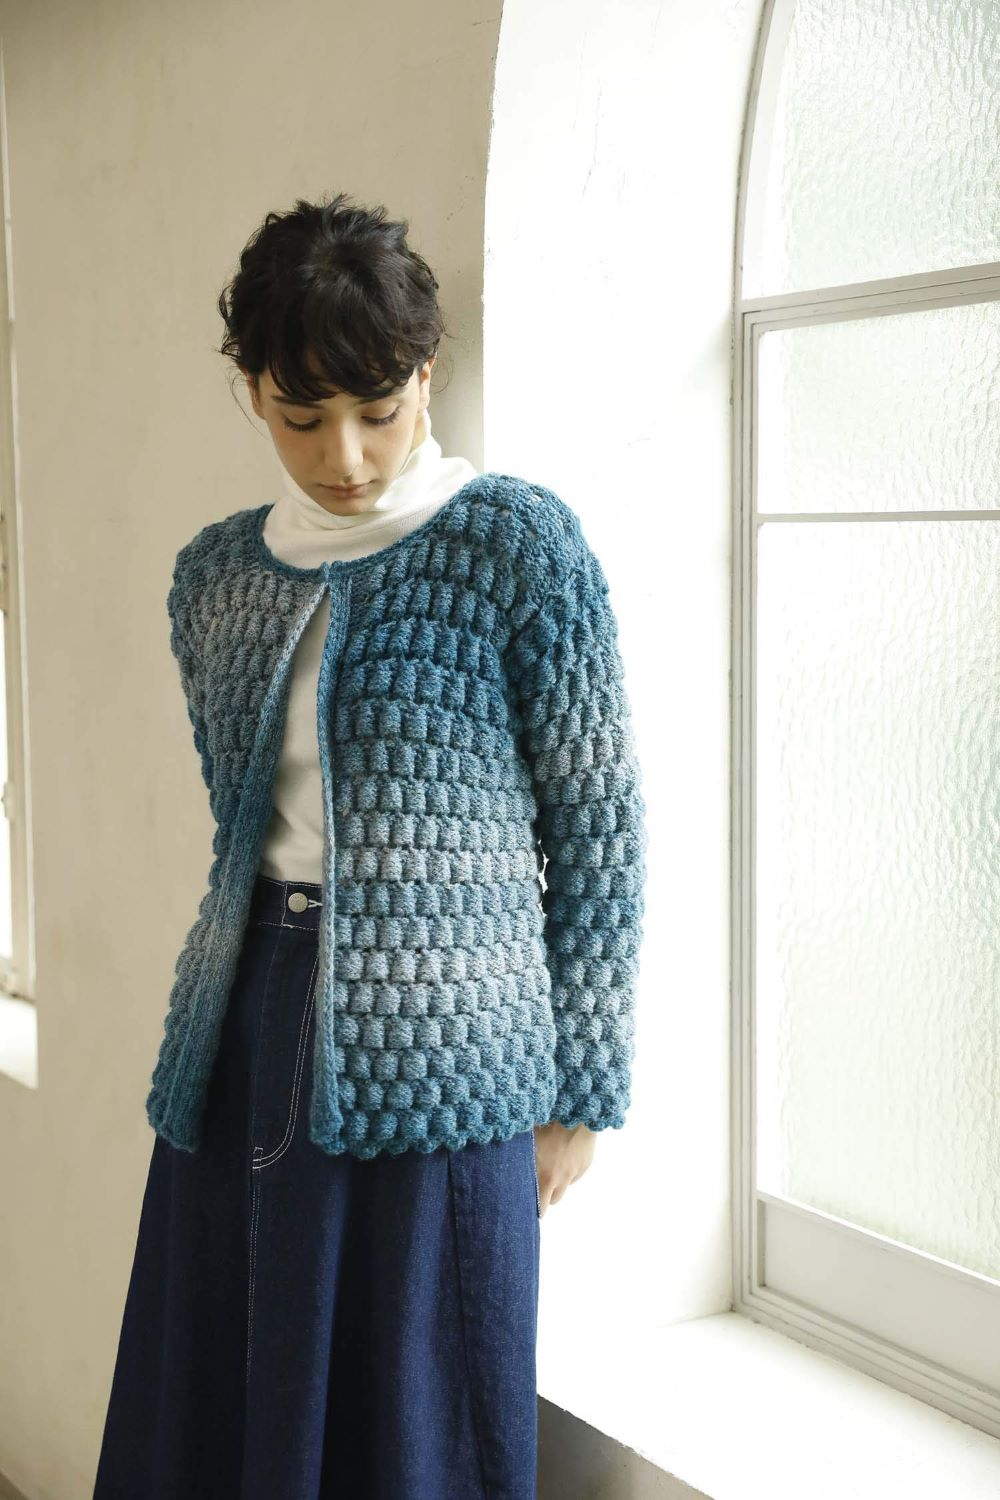 Wonder knit (with knitted fabric as the main character)